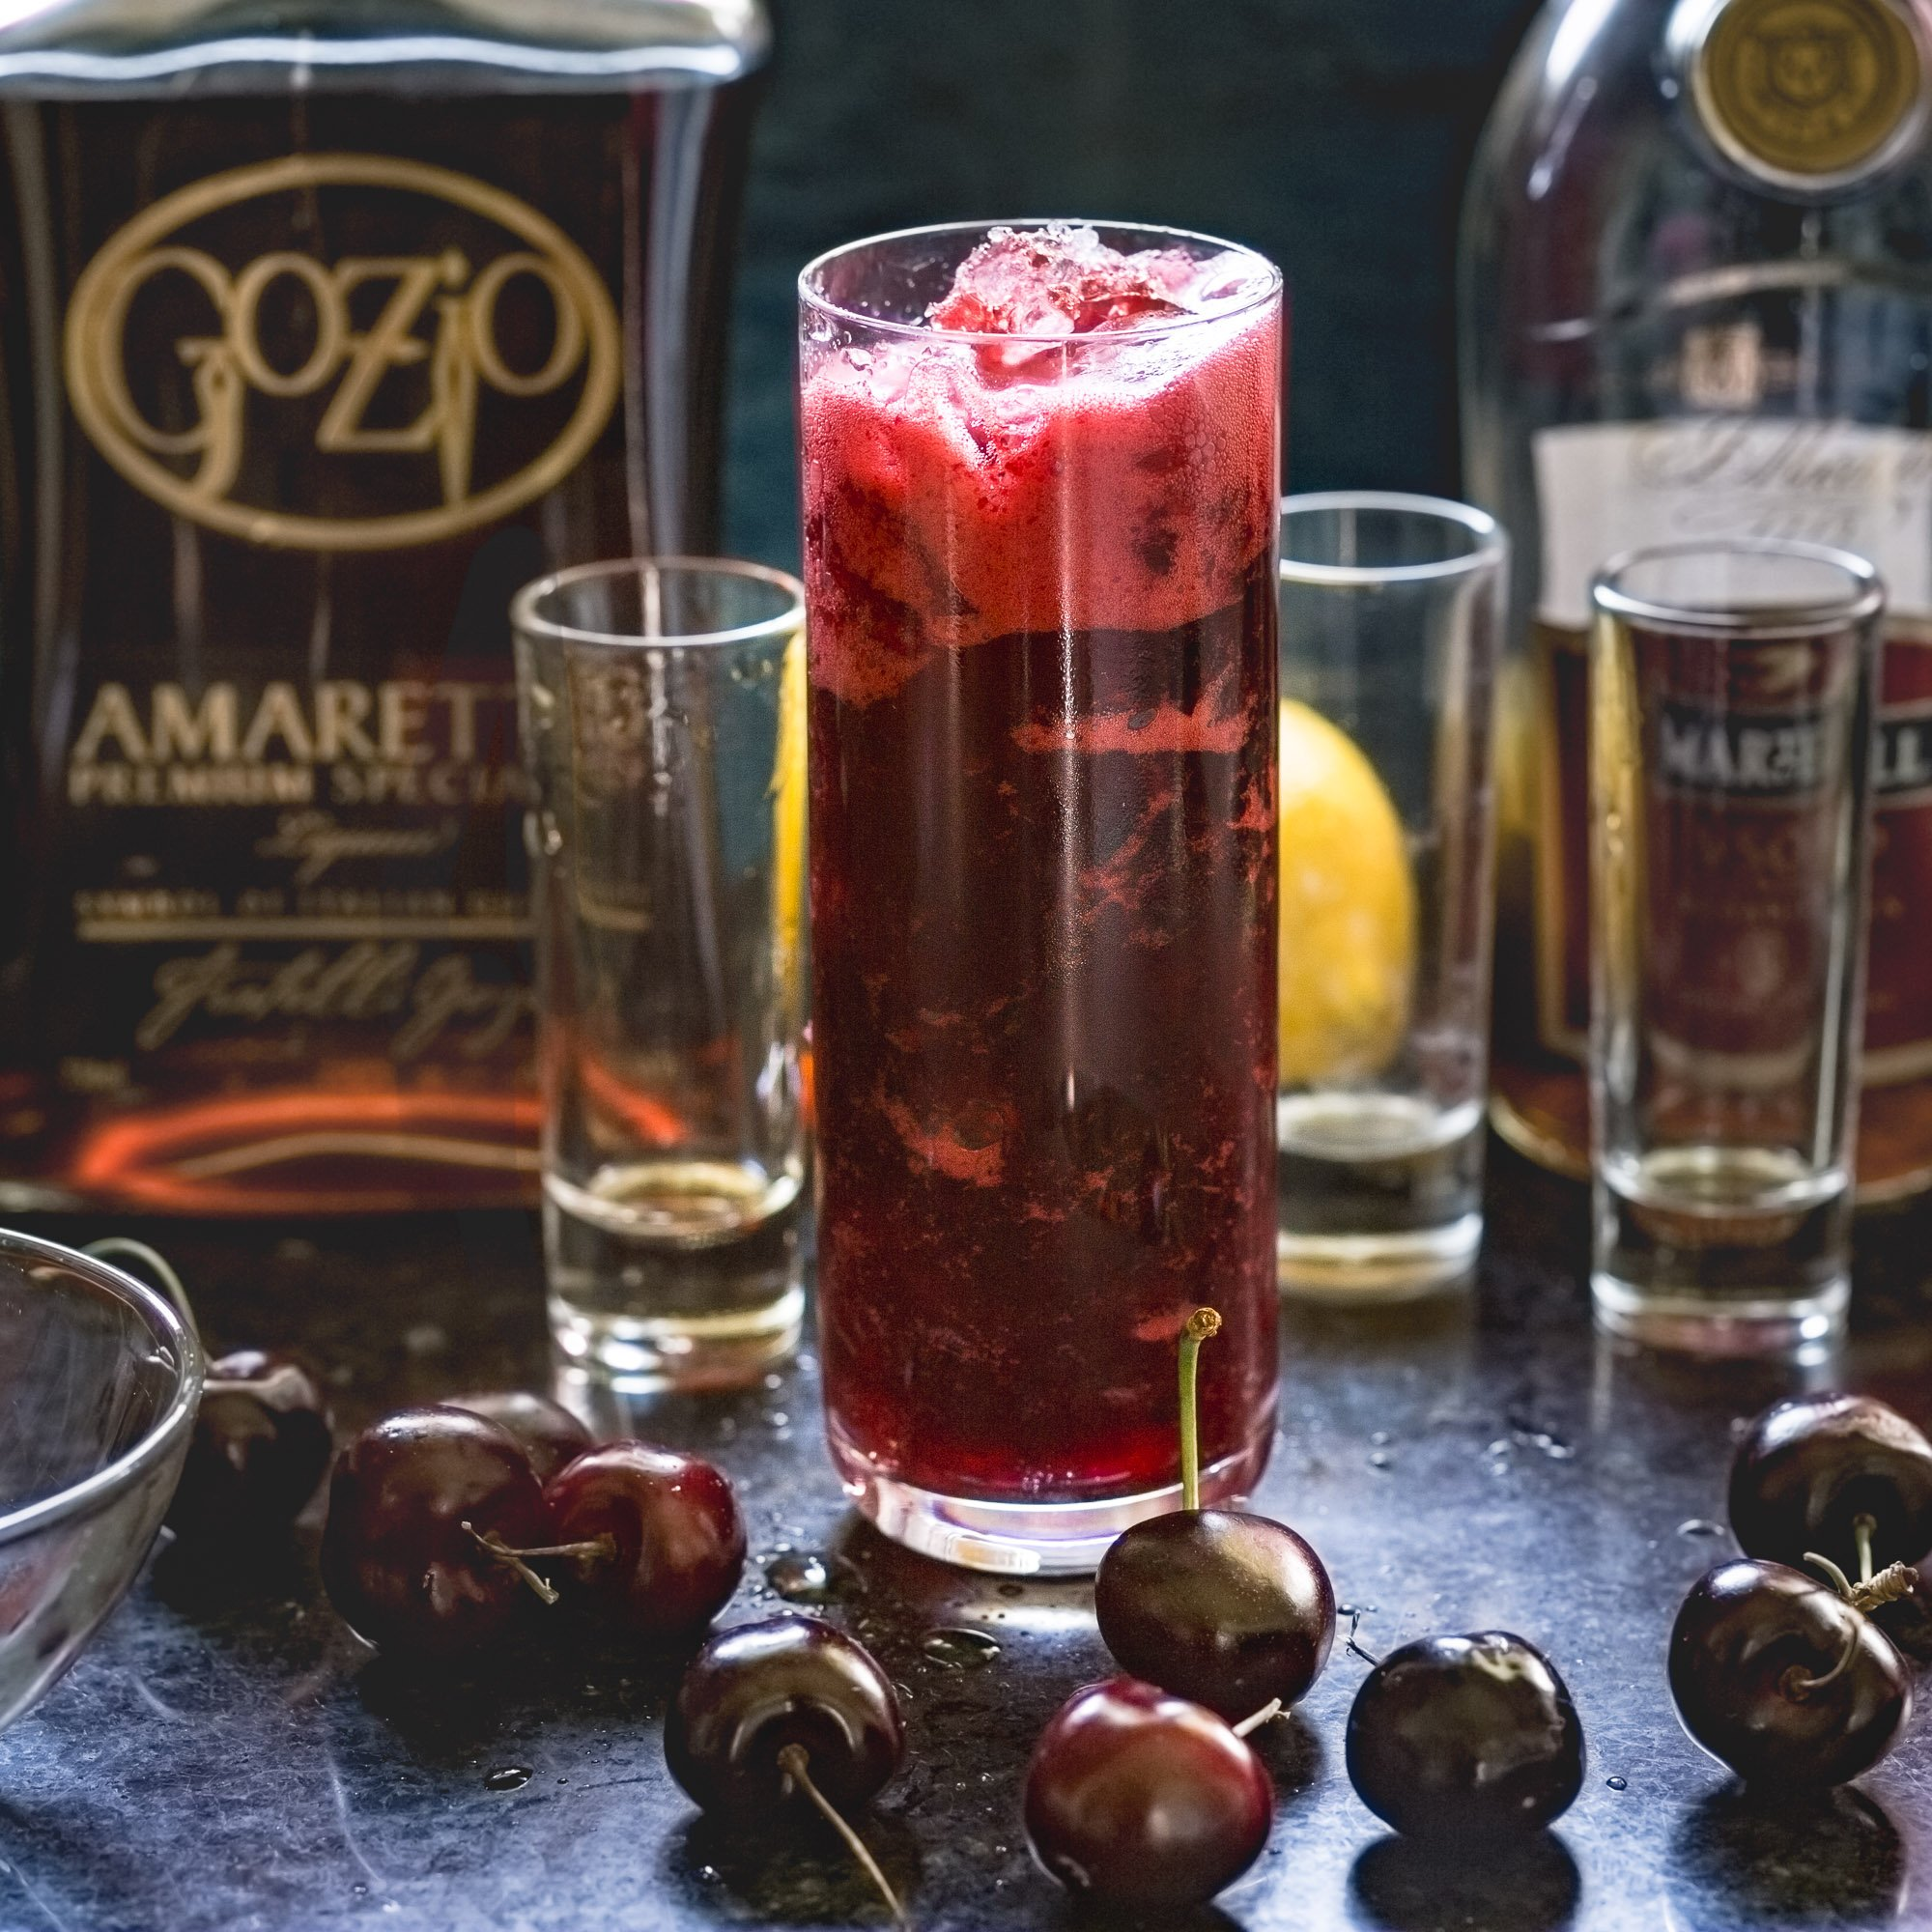 Cherry Amaretto Sidecar Cocktail|www.recipefiction.com